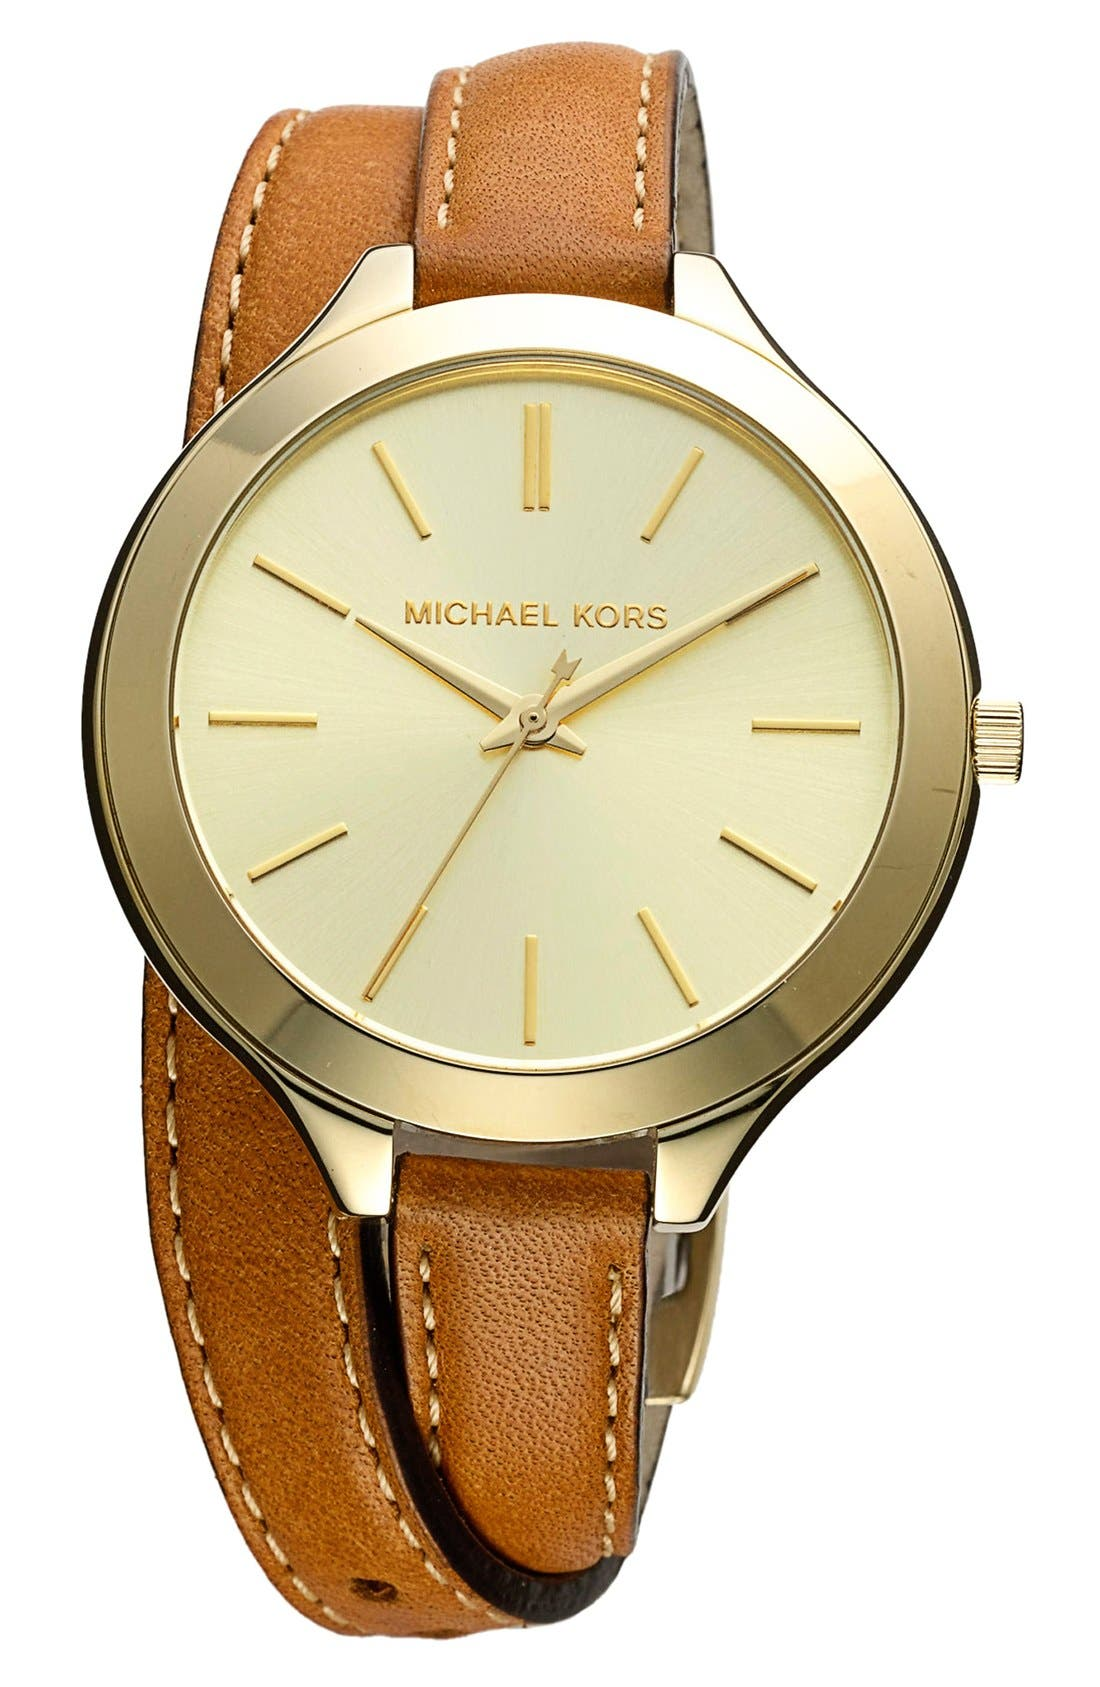 Main Image - Michael Kors Double Wrap Leather Strap Watch, 42mm